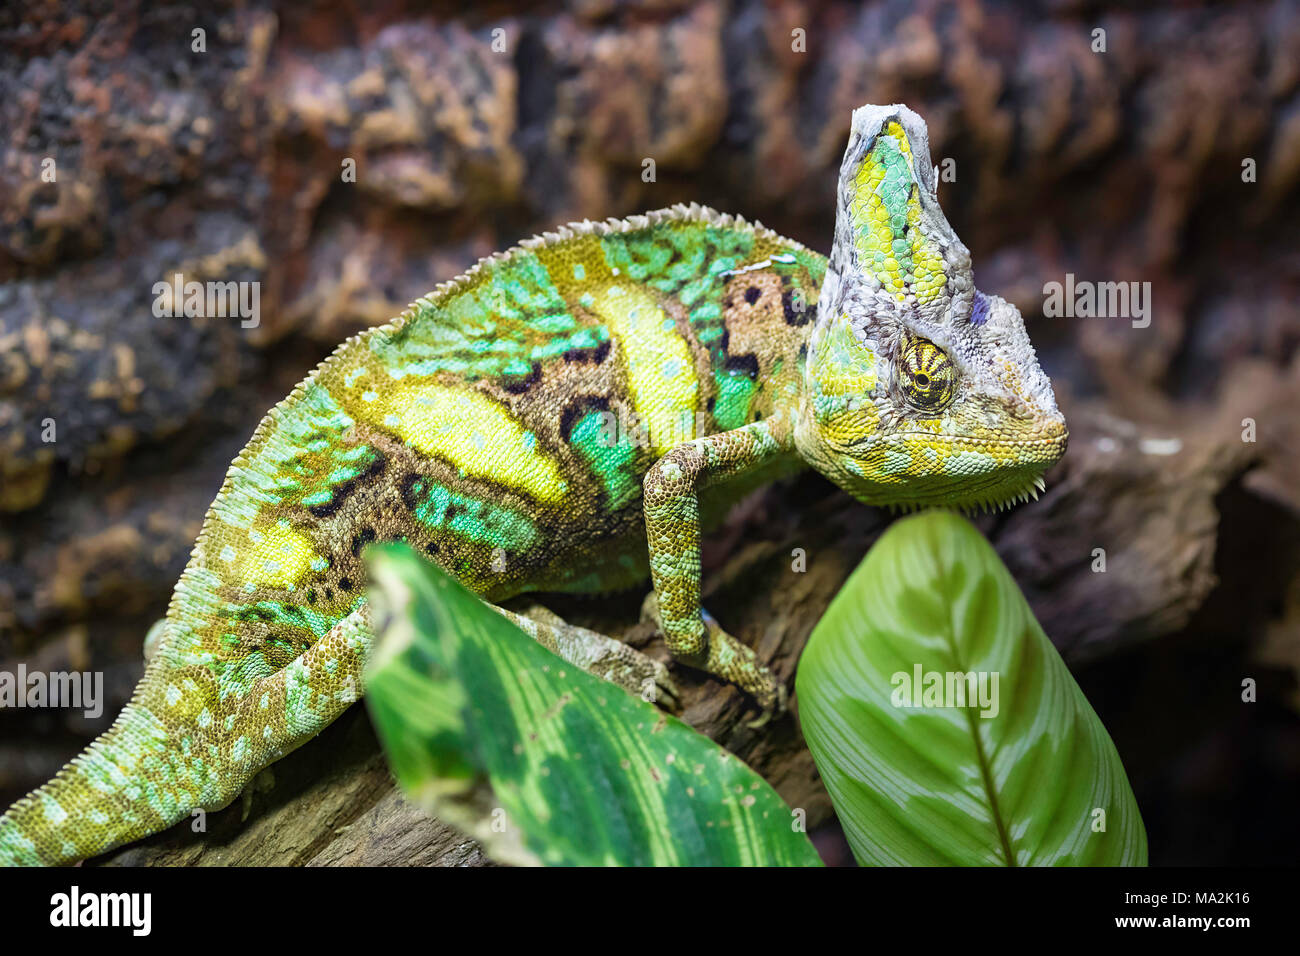 The veiled chameleon, Chamaeleo calyptratus, is a large species of chameleon found in the mountain regions of Yemen, United Arab Emirates and Saudi Ar - Stock Image